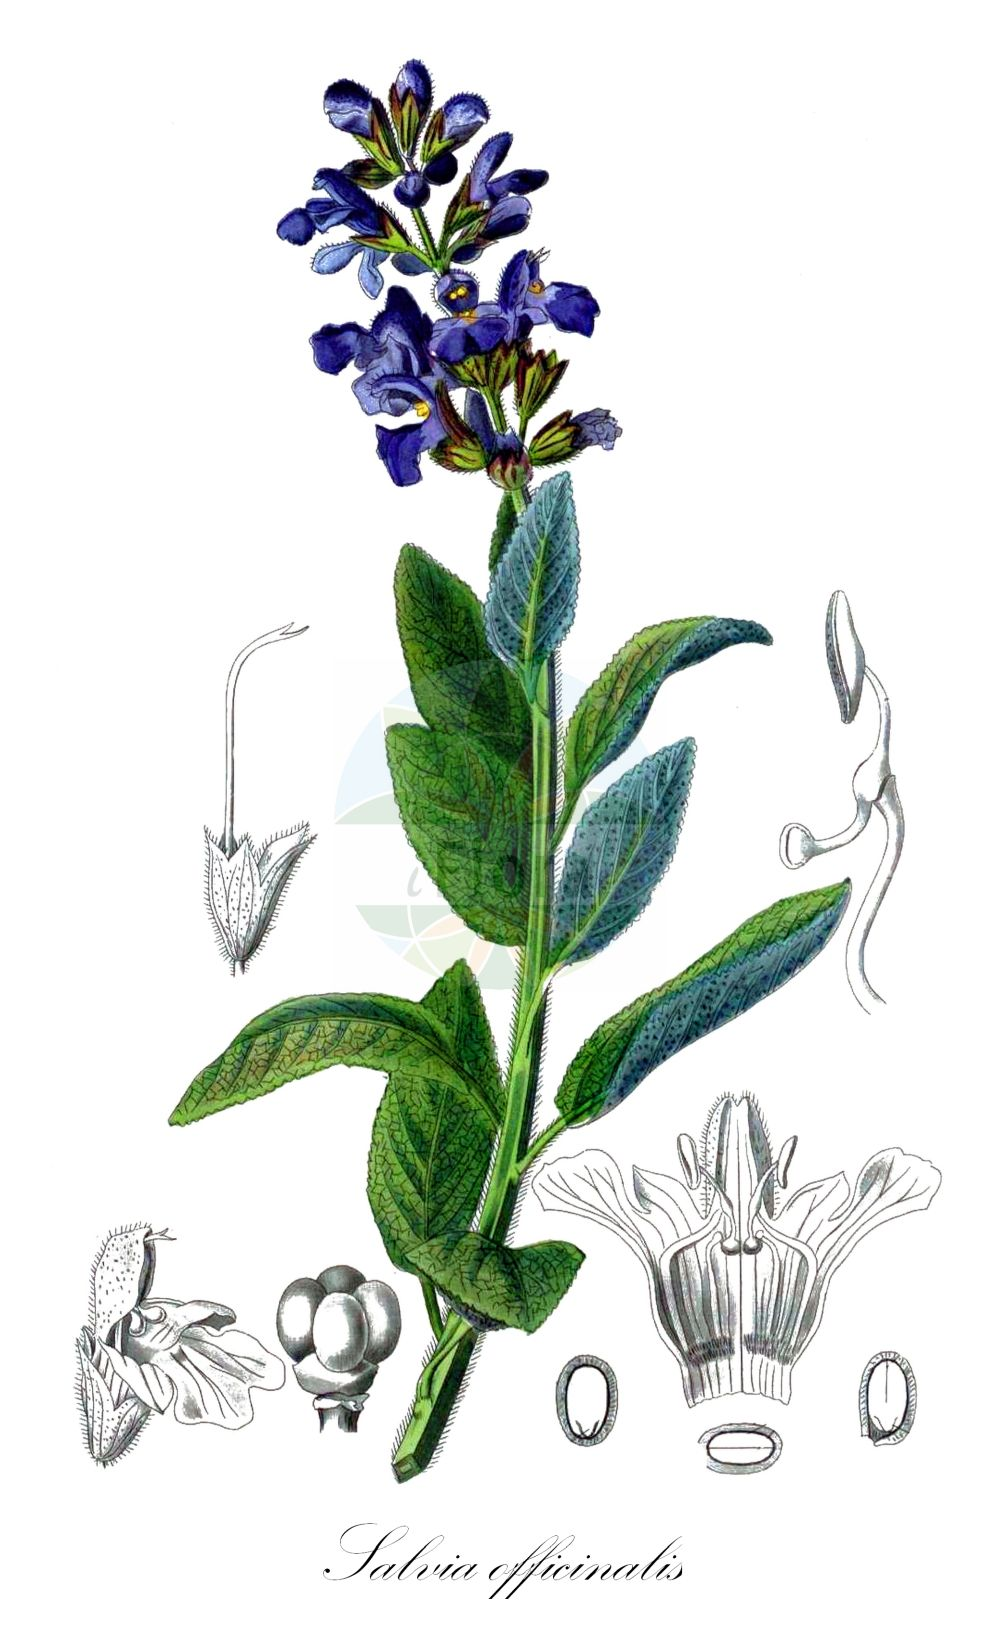 Historische Abbildung von Salvia officinalis (Echter Salbei - Sage). ---- Historical Drawing of Salvia officinalis (Echter Salbei - Sage).(Salvia officinalis,Echter Salbei,Sage,Common Kitchen Garden ,Salvia,Salbei,Sage,Lamiaceae,Lippenbluetengewaechse;Lippenbluetler,Nettle family,Kohl (1891-1895))